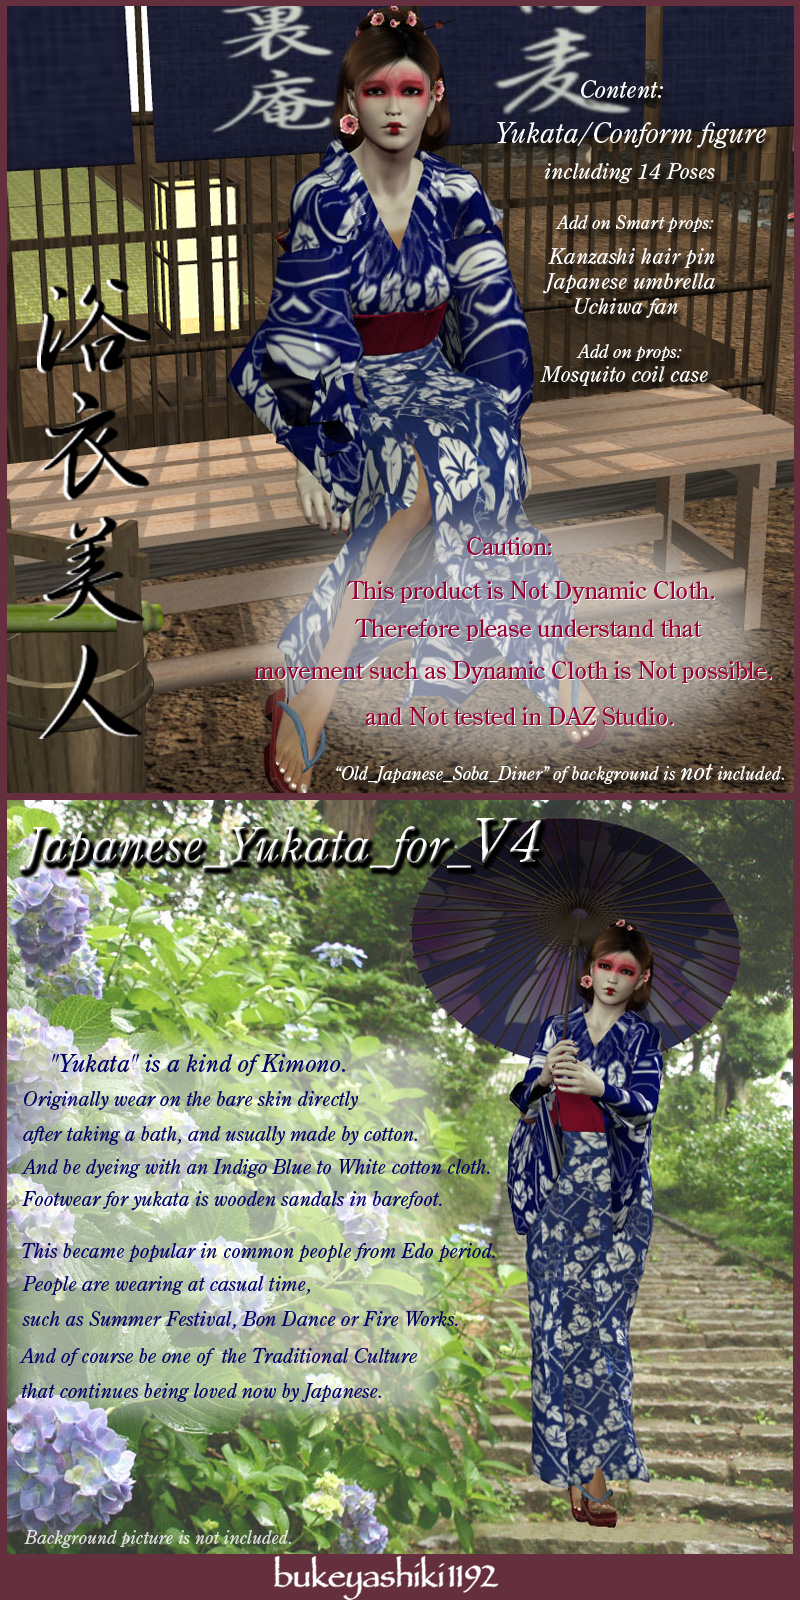 Japanese_Yukata_for_V4